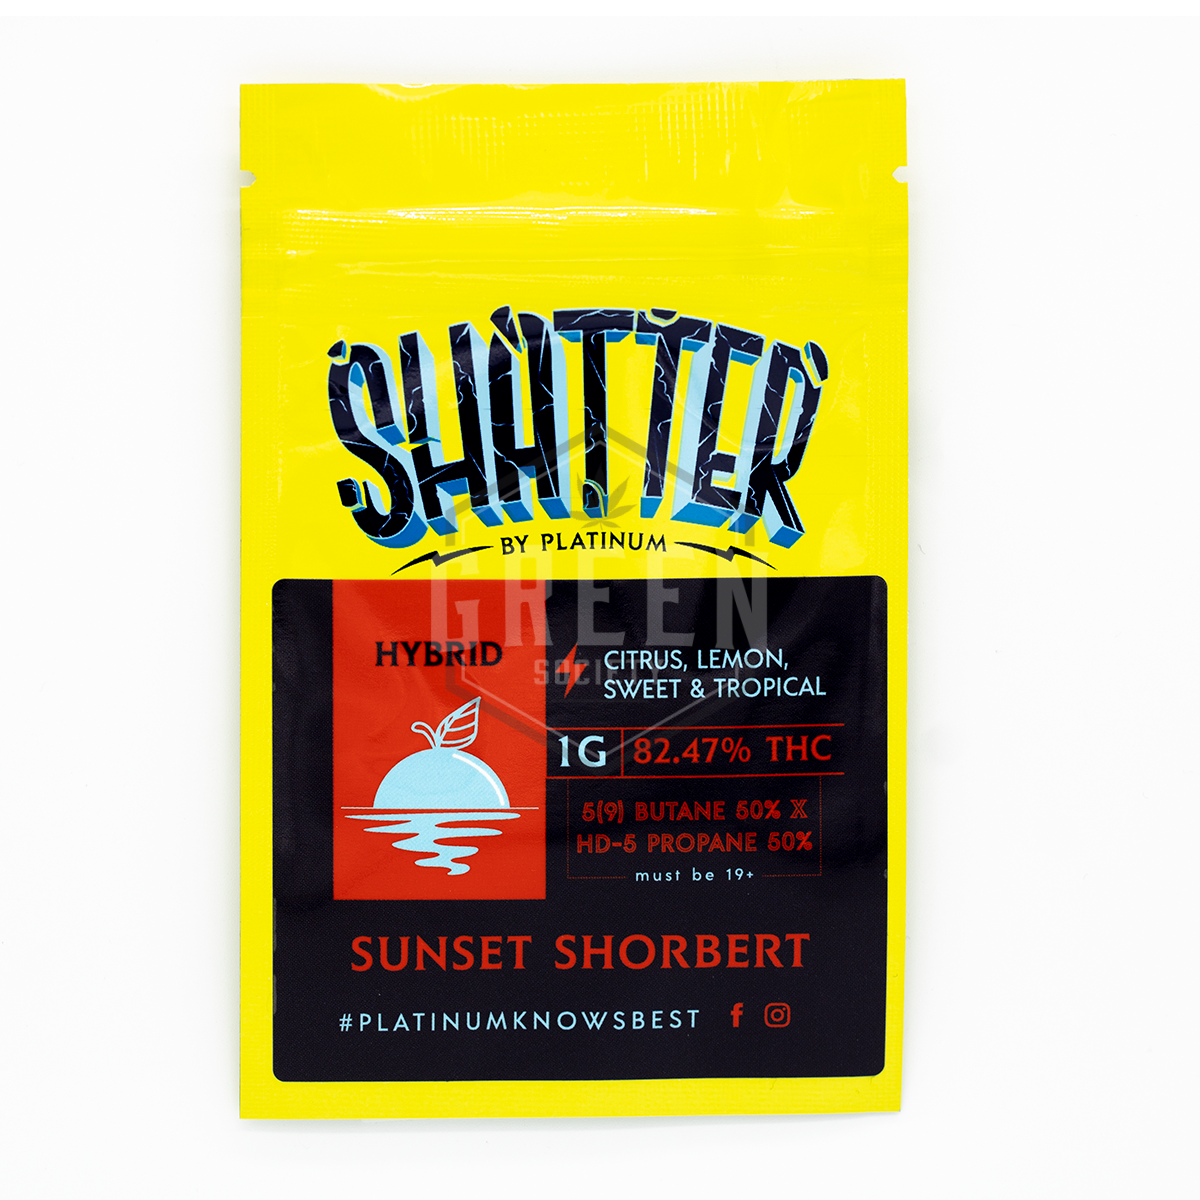 Sunset Shortbert Shatter by Platinum by Green Society - Image © 2018 Green Society. All Rights Reserved.